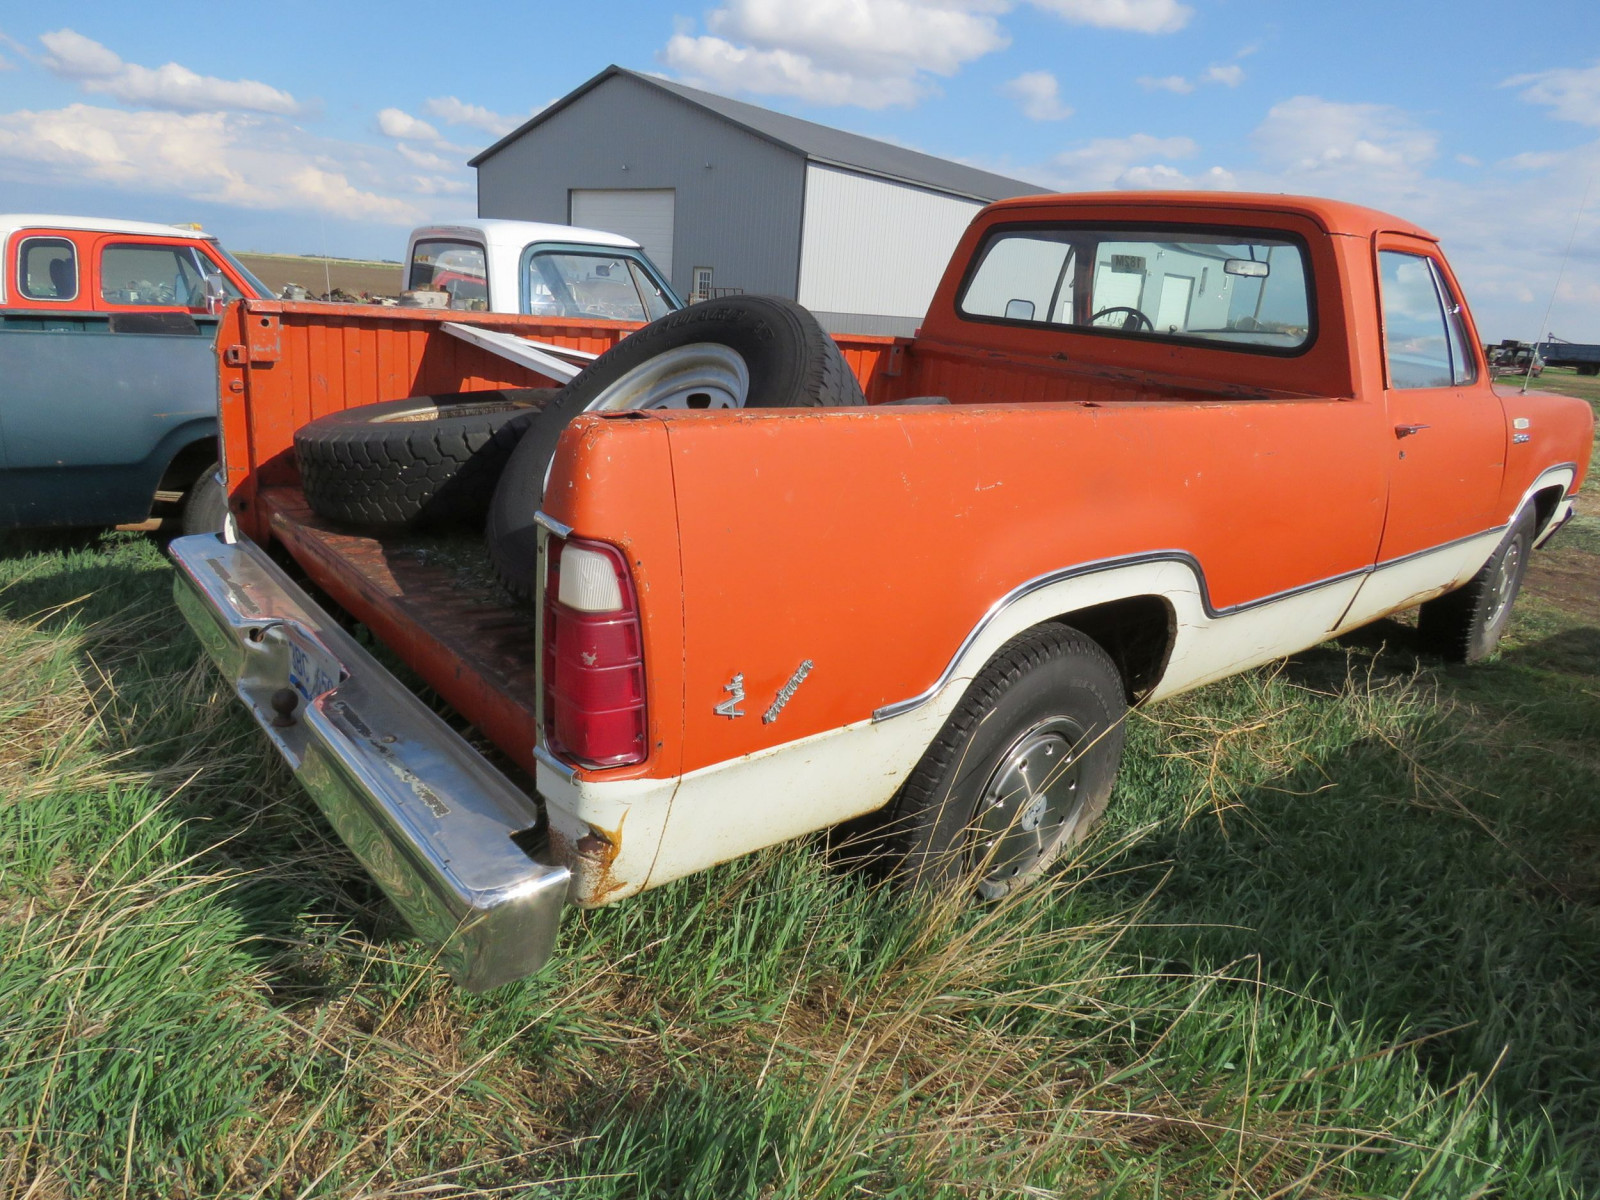 1973 Dodge D200 Pickup - Image 3